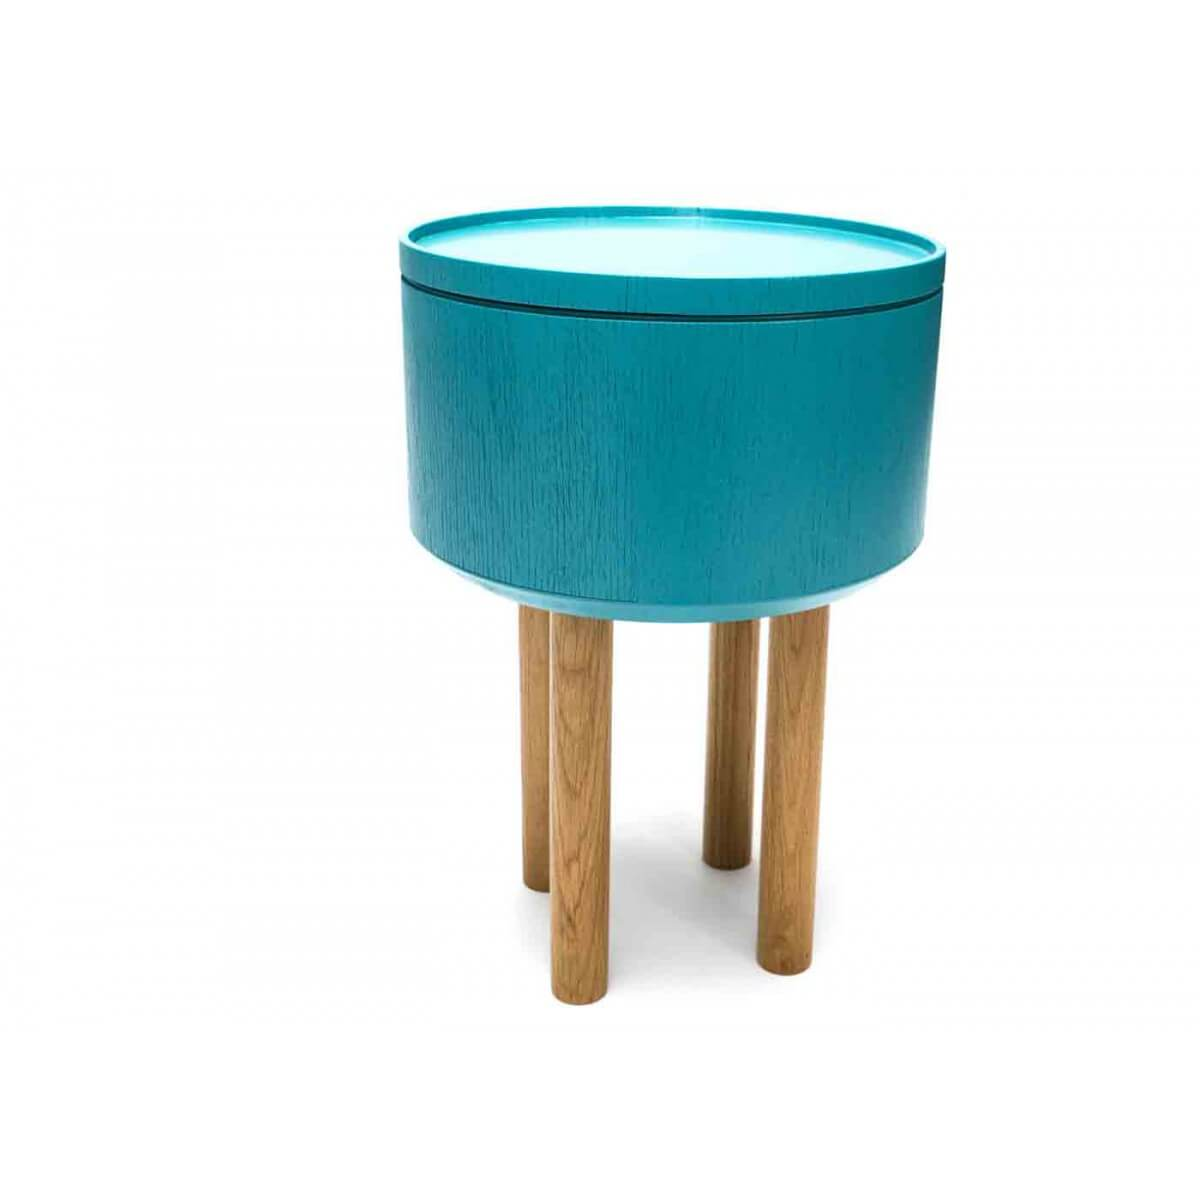 Table basse design scandinave bleu glacier hat 3 par bellila for Table basse d appoint